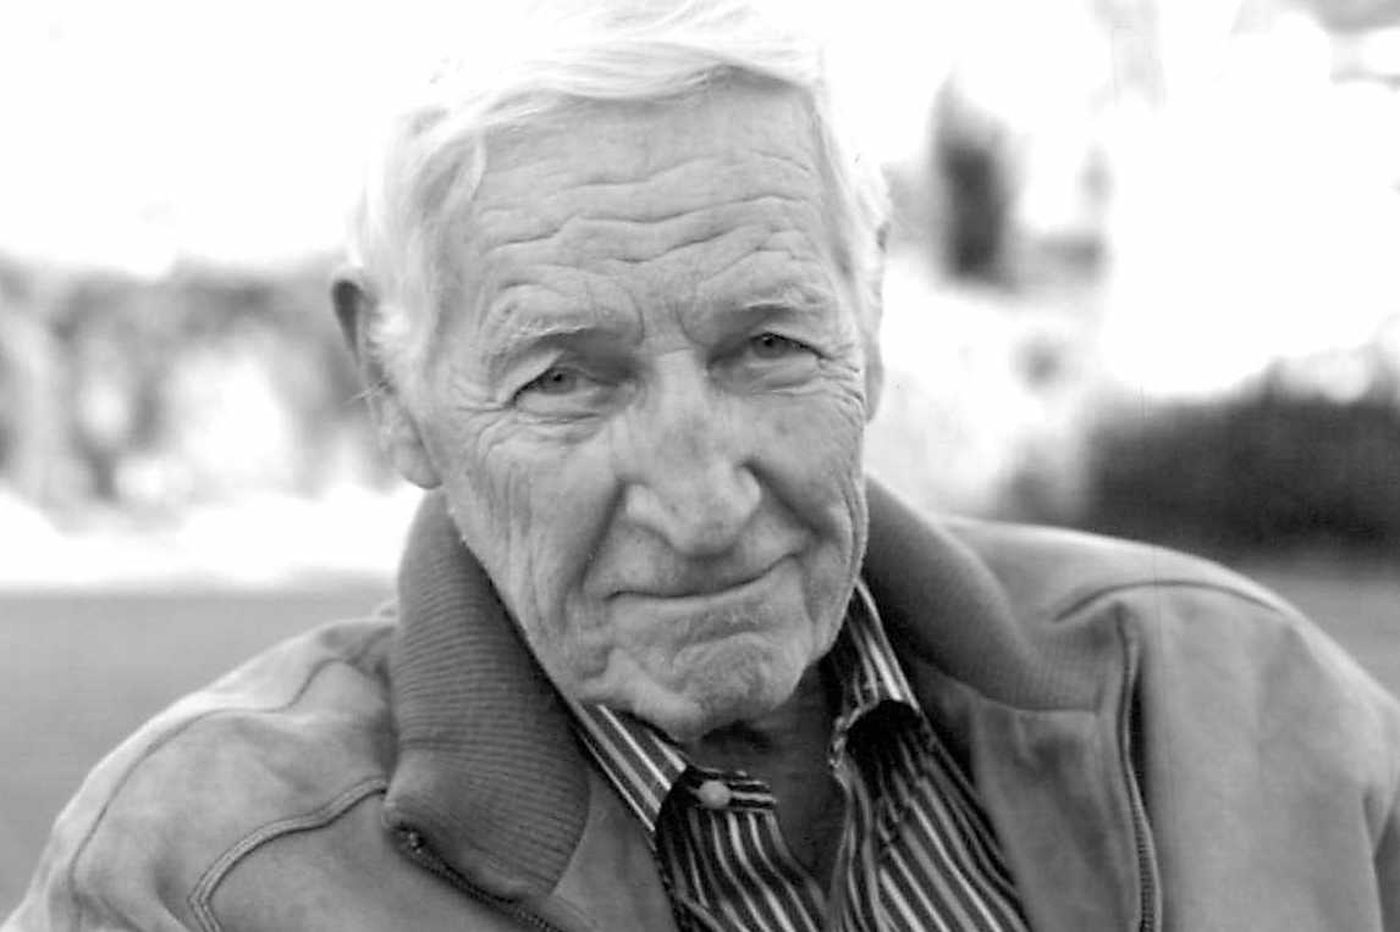 John Raines, 84, civil rights activist, cleric, and Temple prof